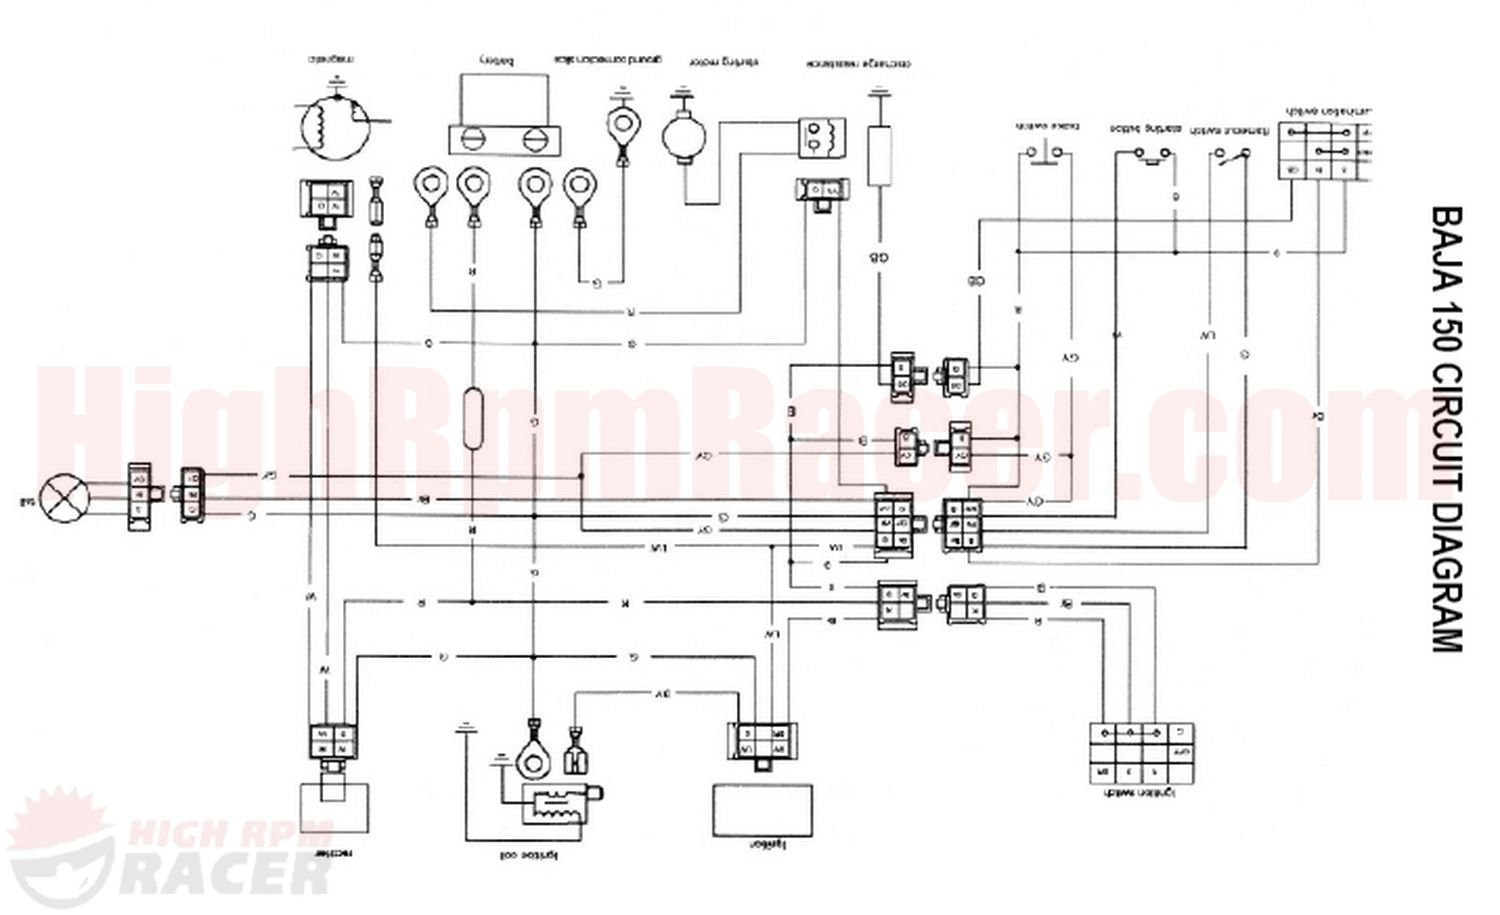 bmx atv wiring diagram bmx wiring diagrams online wiring diagram for baja 150cc atvs 0 00